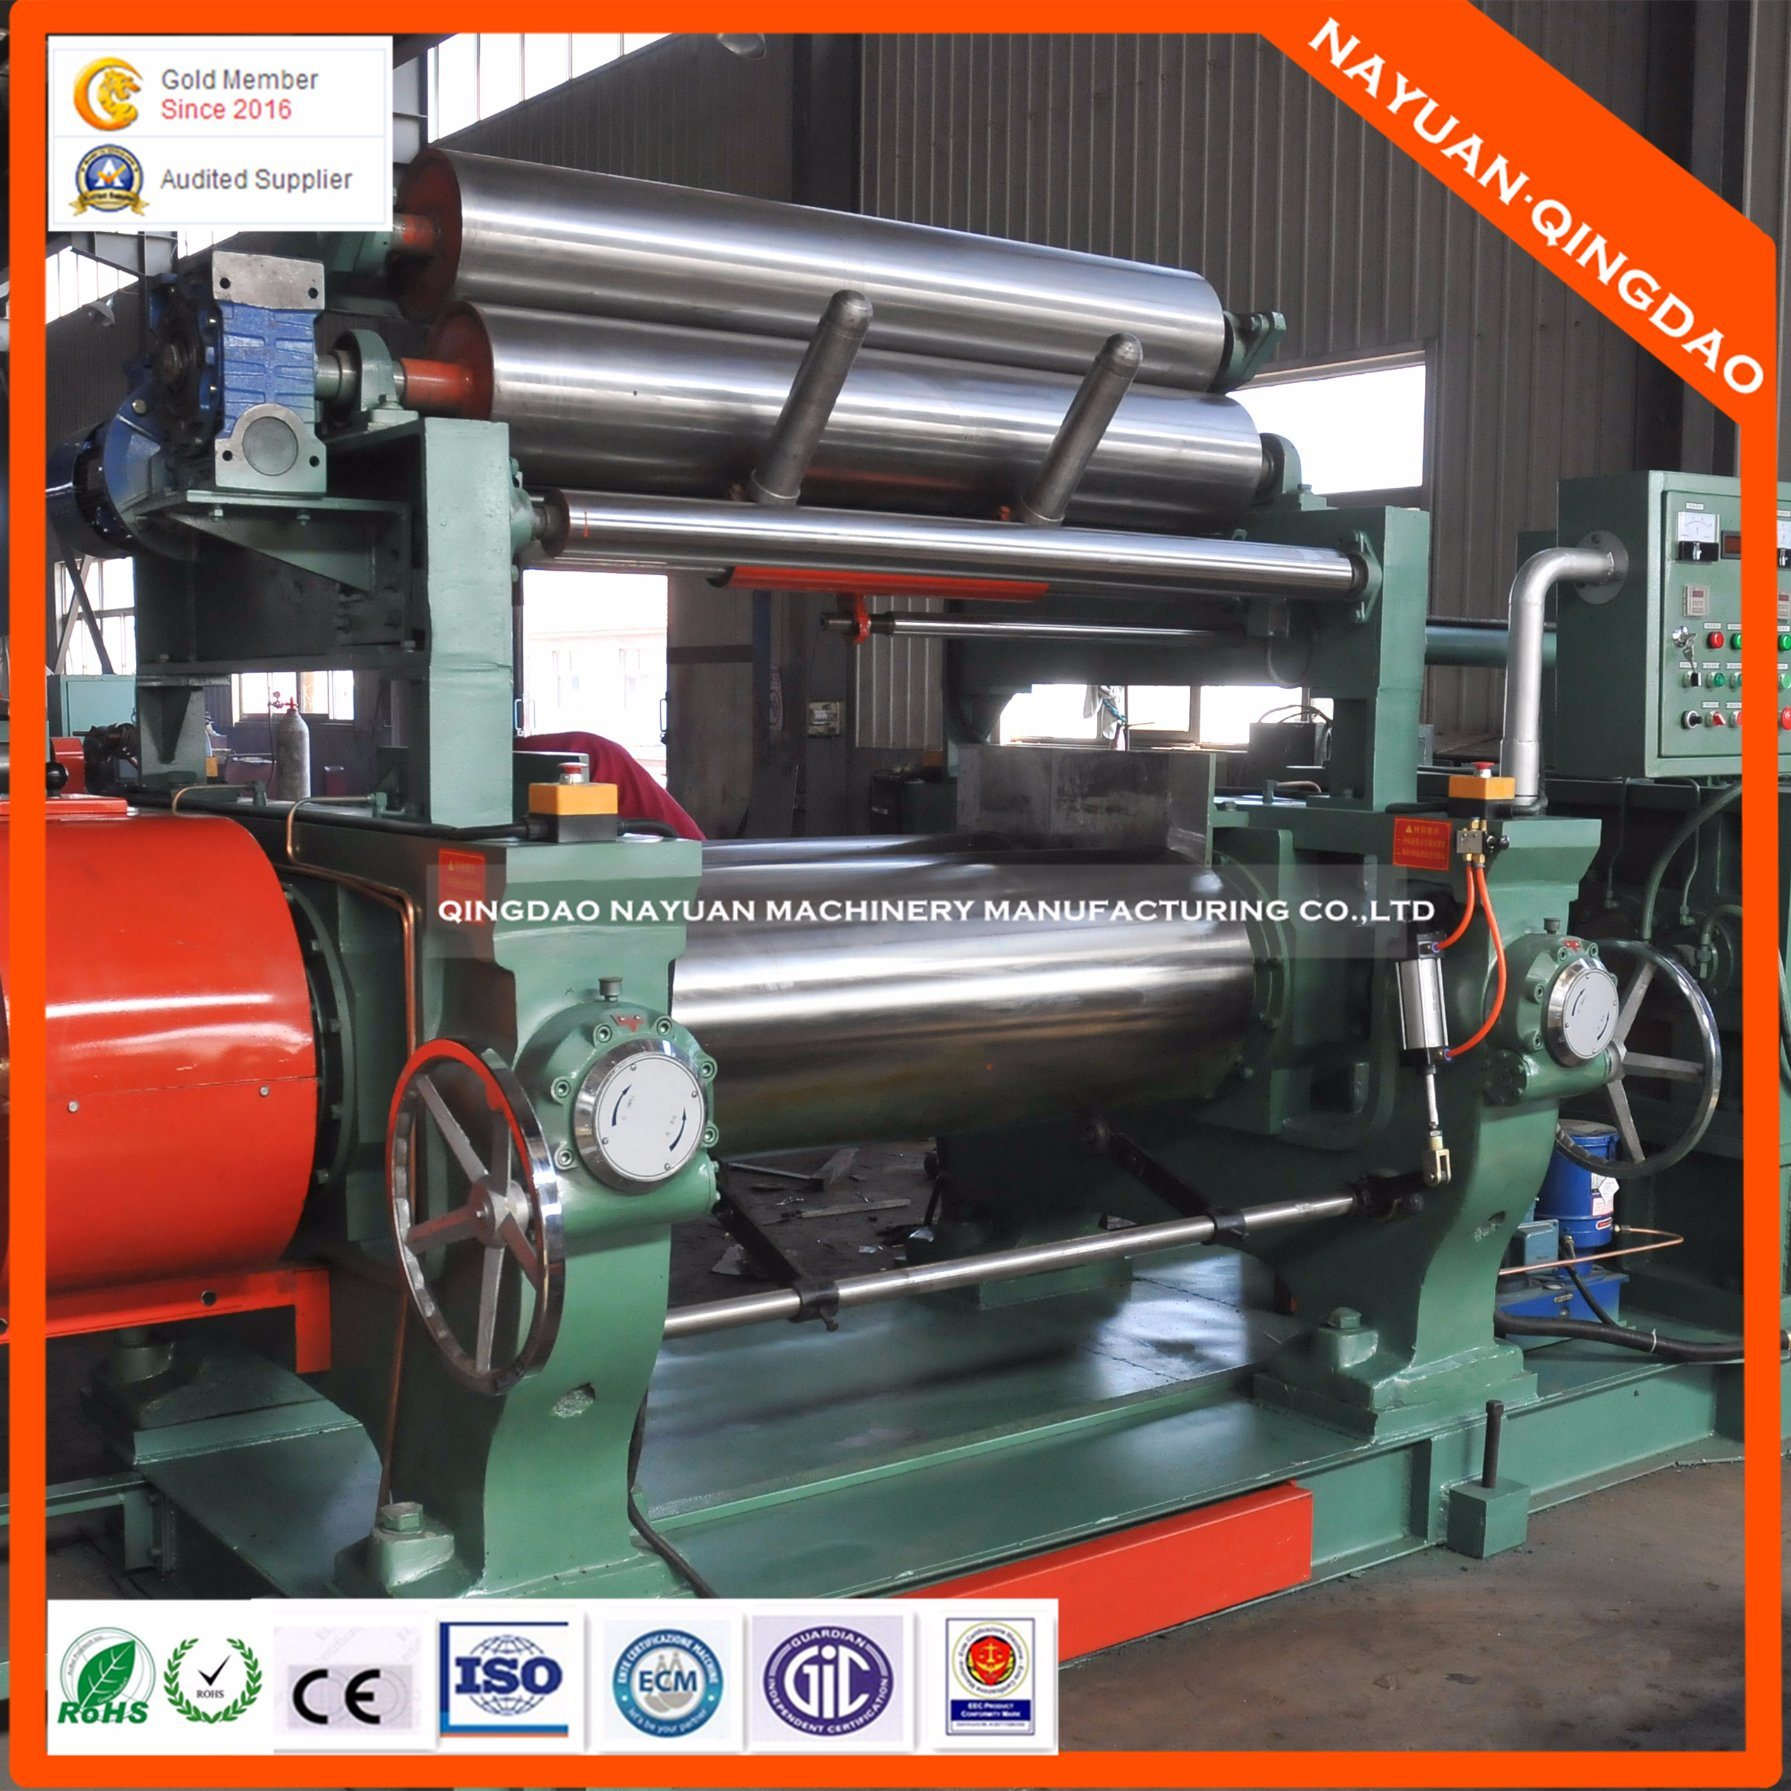 Open Mixing Mill for Rubber Sheet Production Equipment